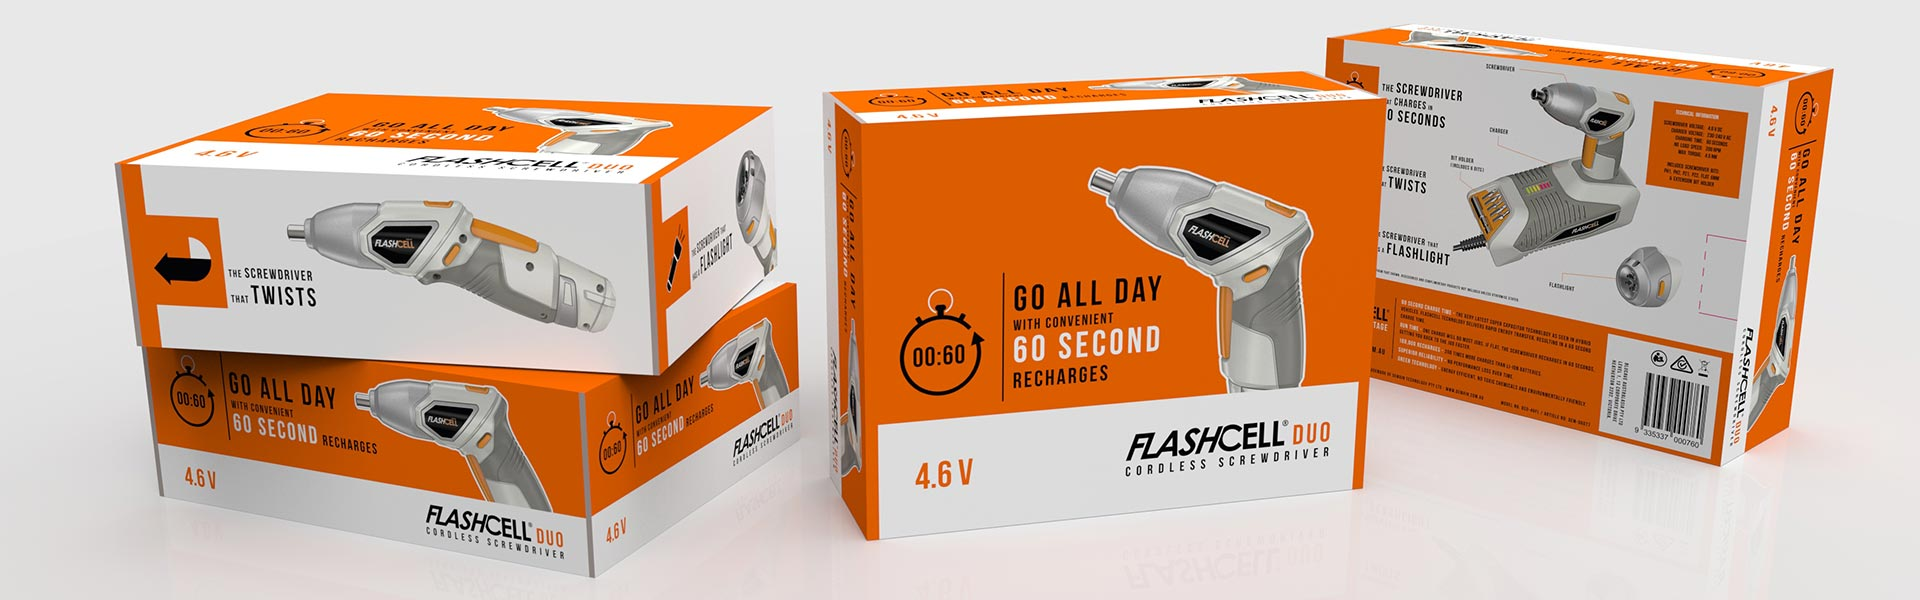 Flashcell Packaging 01